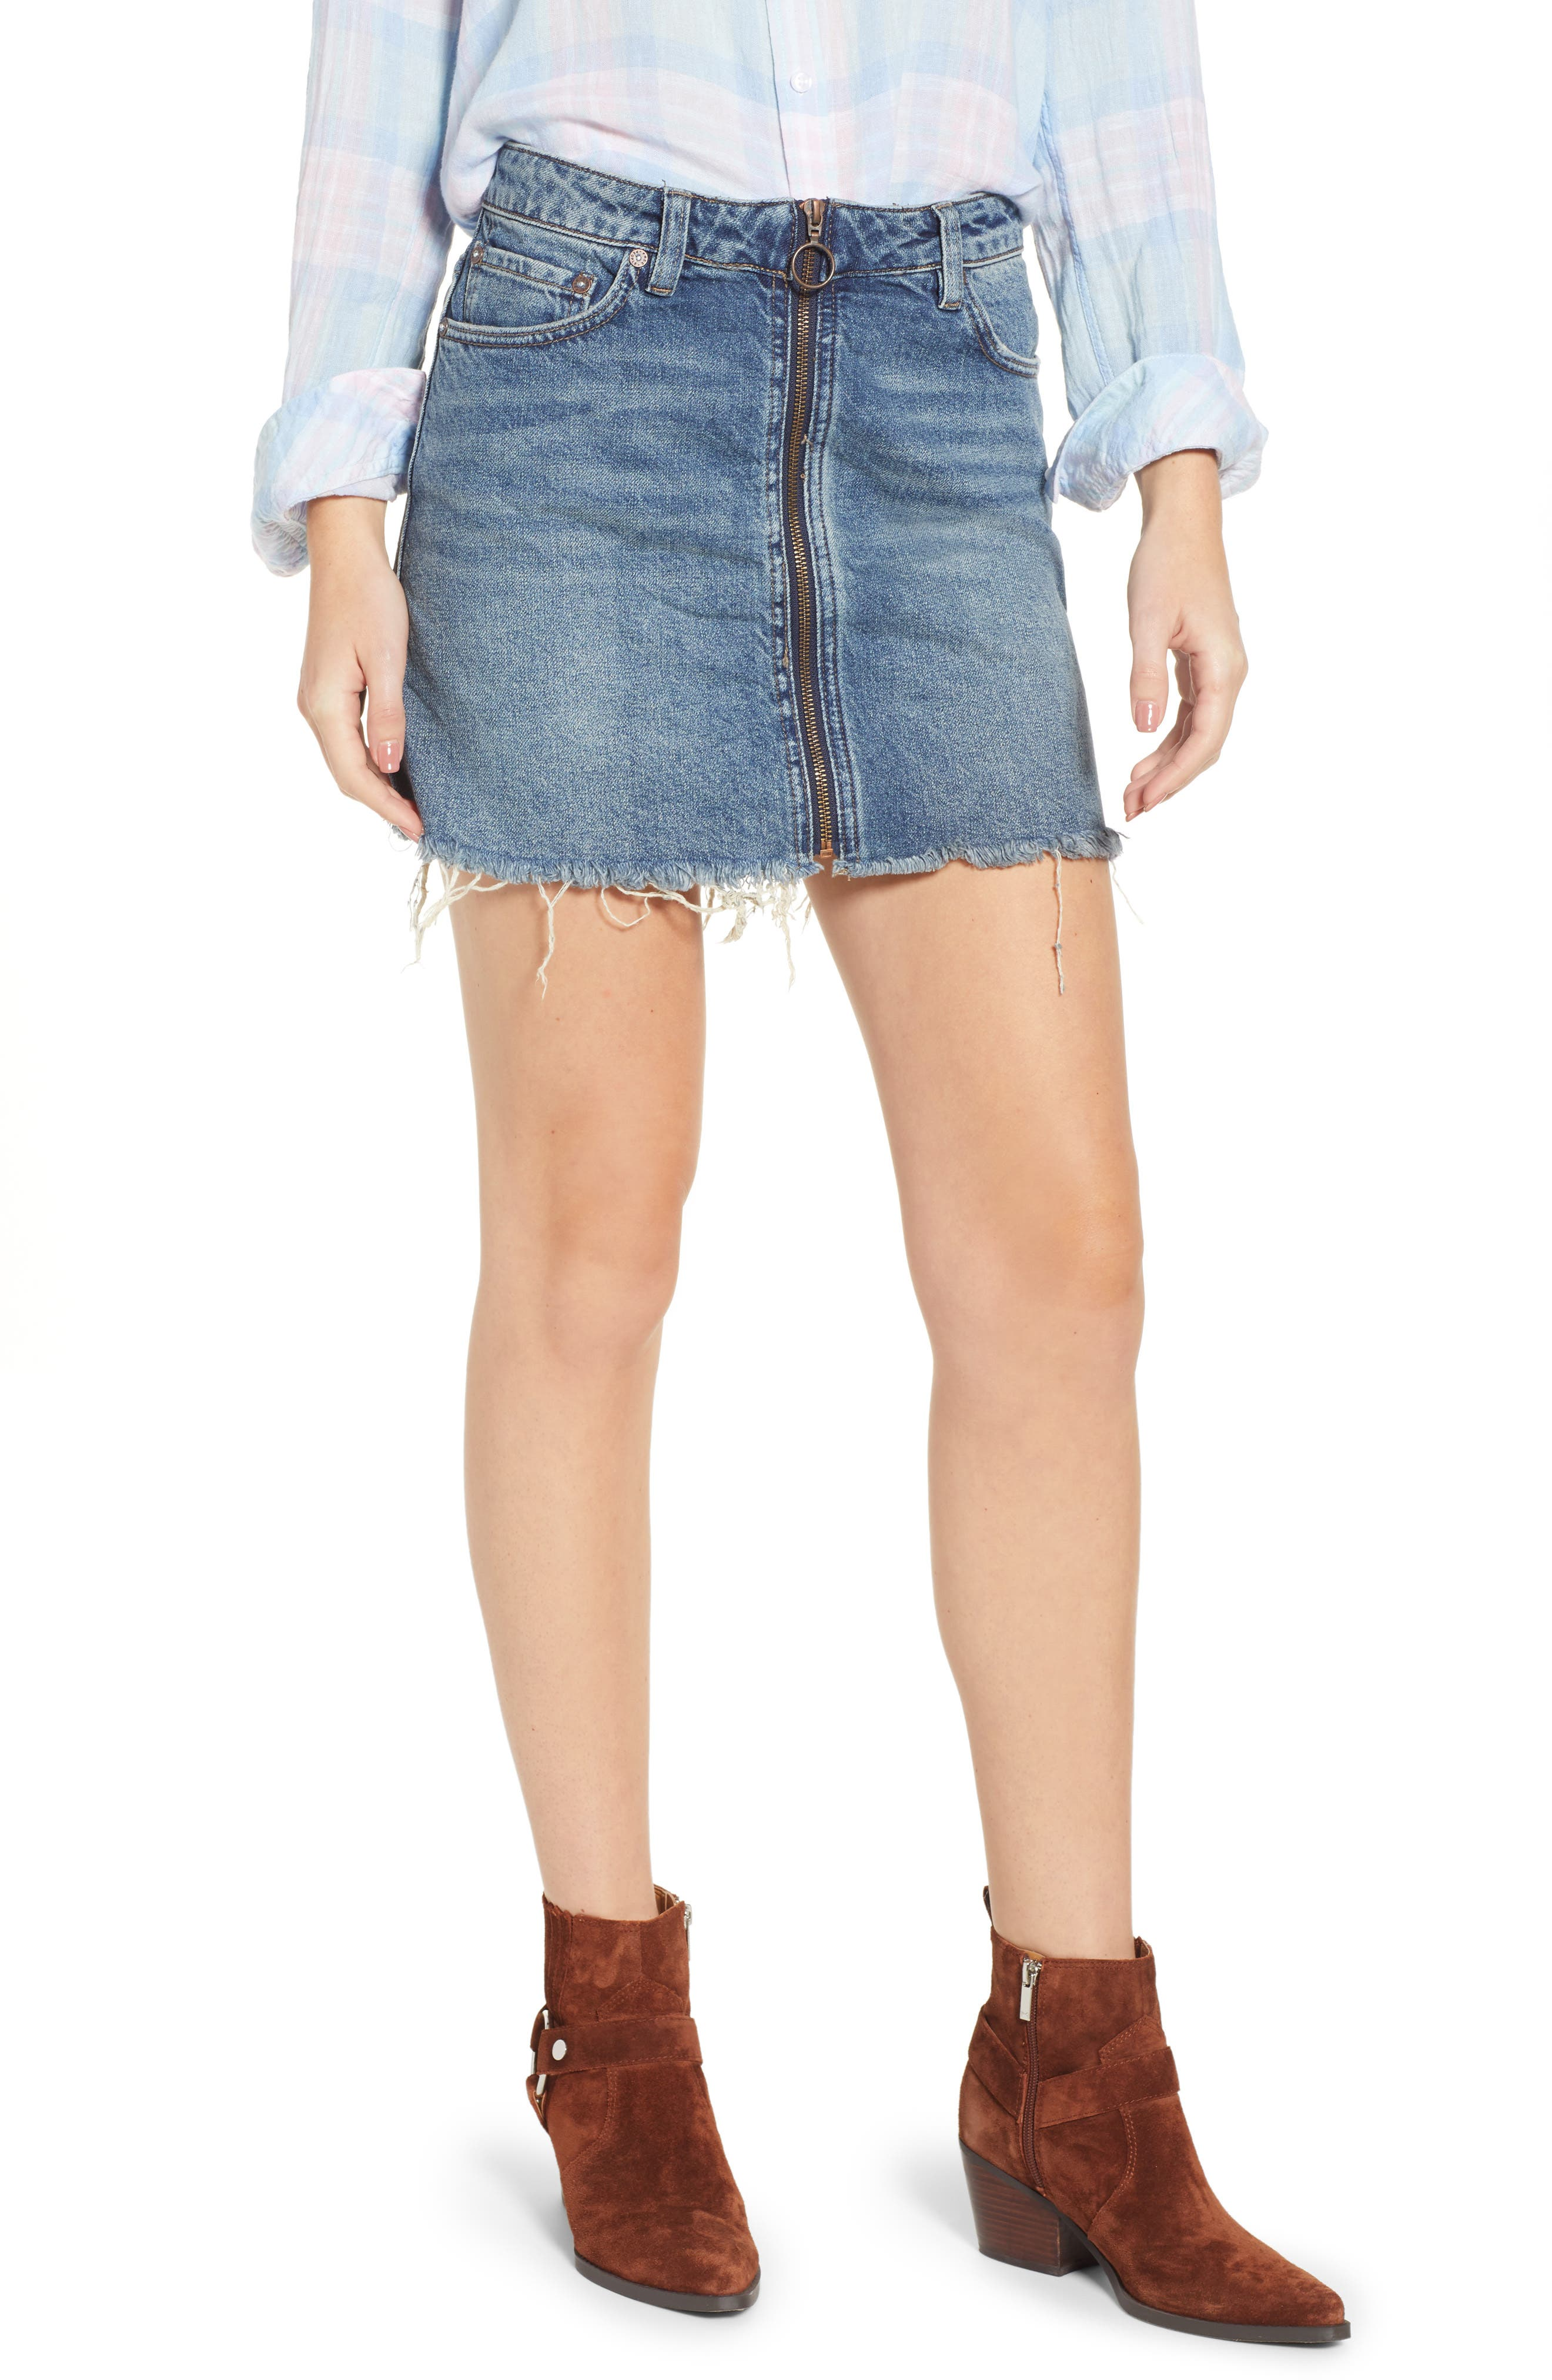 FREE PEOPLE, We the Free by Free People Zip It Up Denim Miniskirt, Main thumbnail 1, color, BLUE